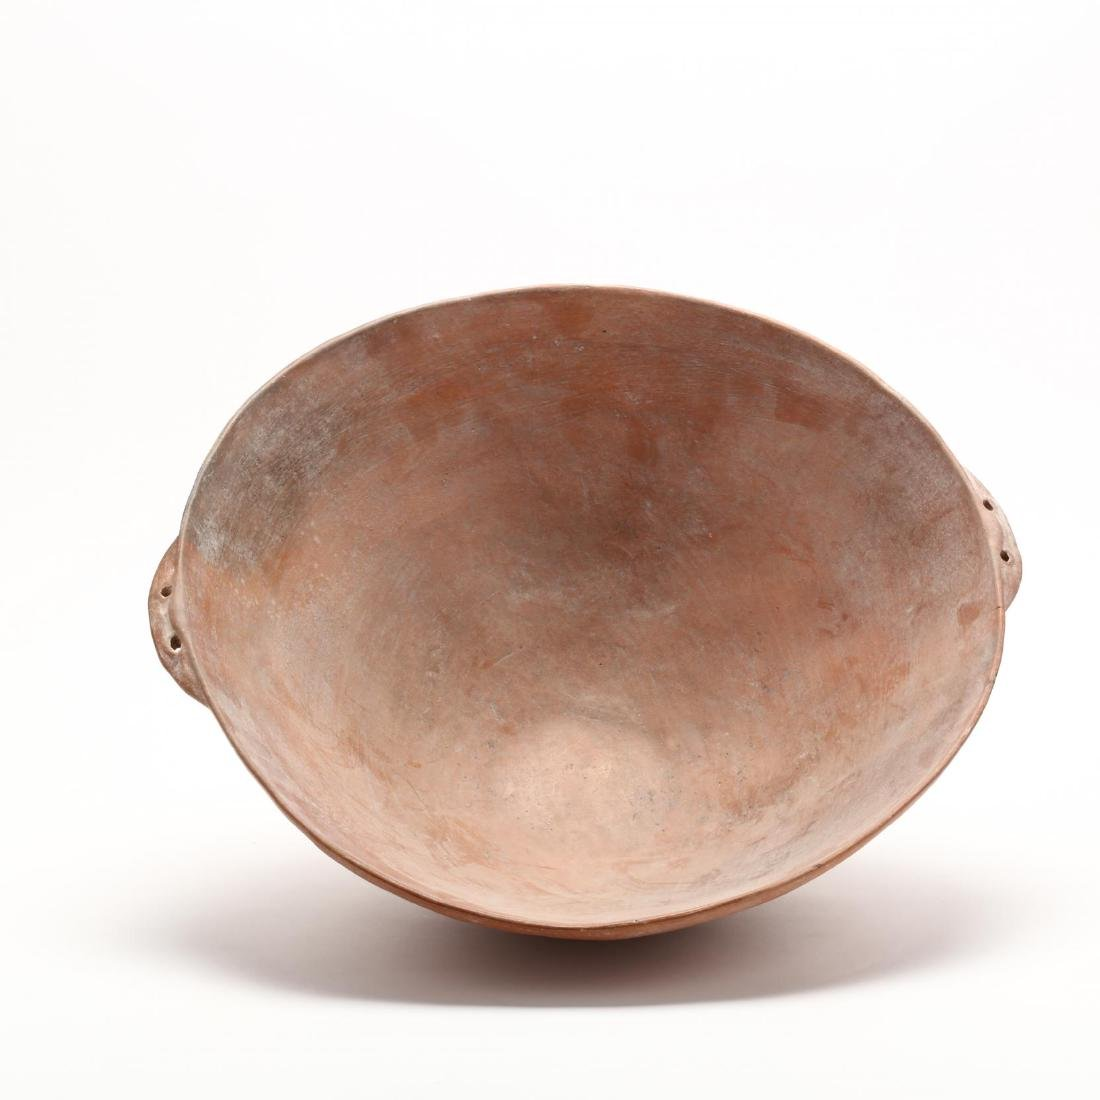 Cypriot Bronze Age Large Polished Red Ware Bowl - 2